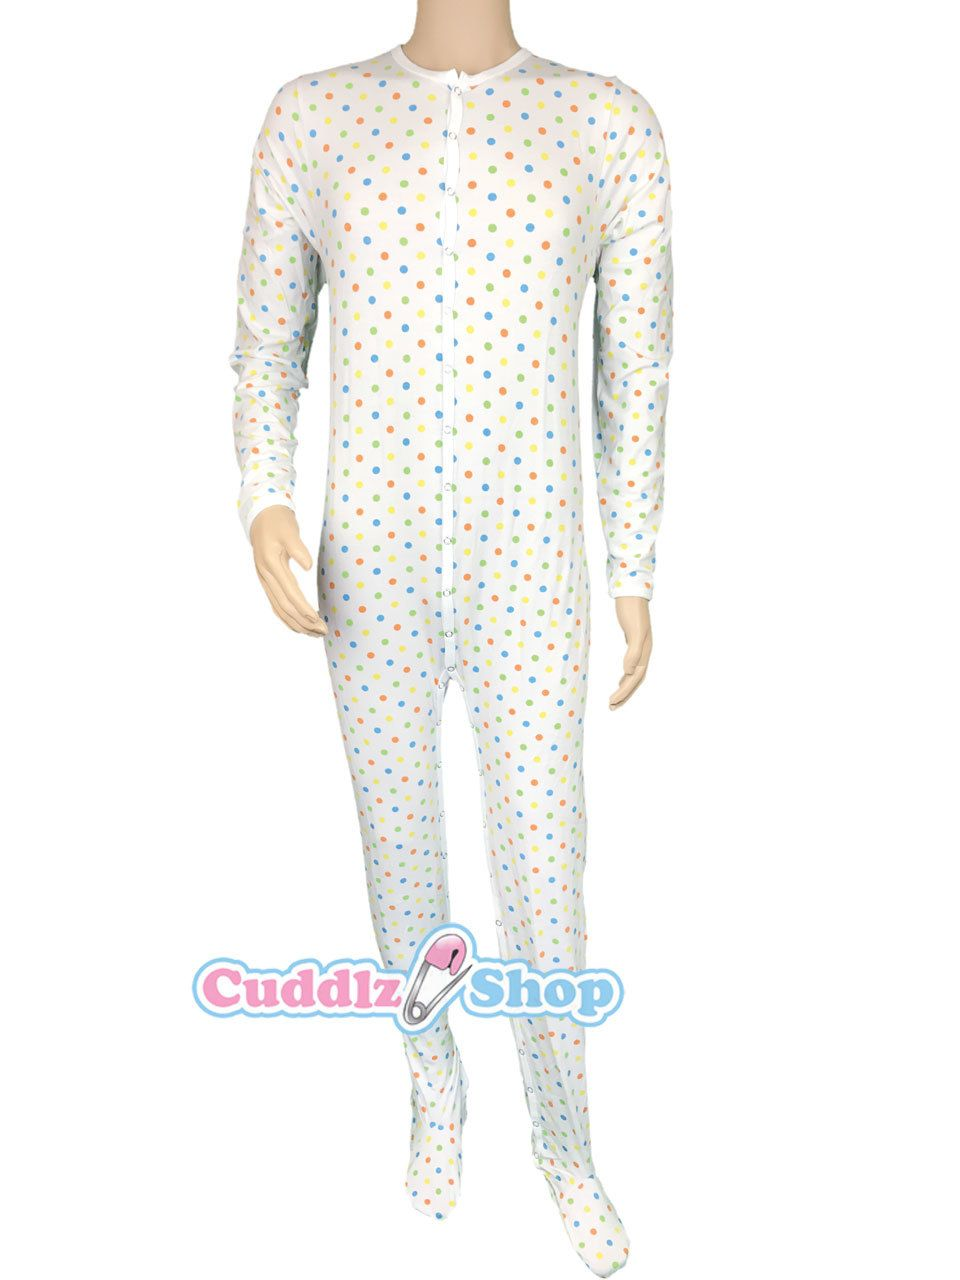 64f6dccea Polka Dot Pattern Stretch Cotton Footed Adult Sleepsuit Onesie ...